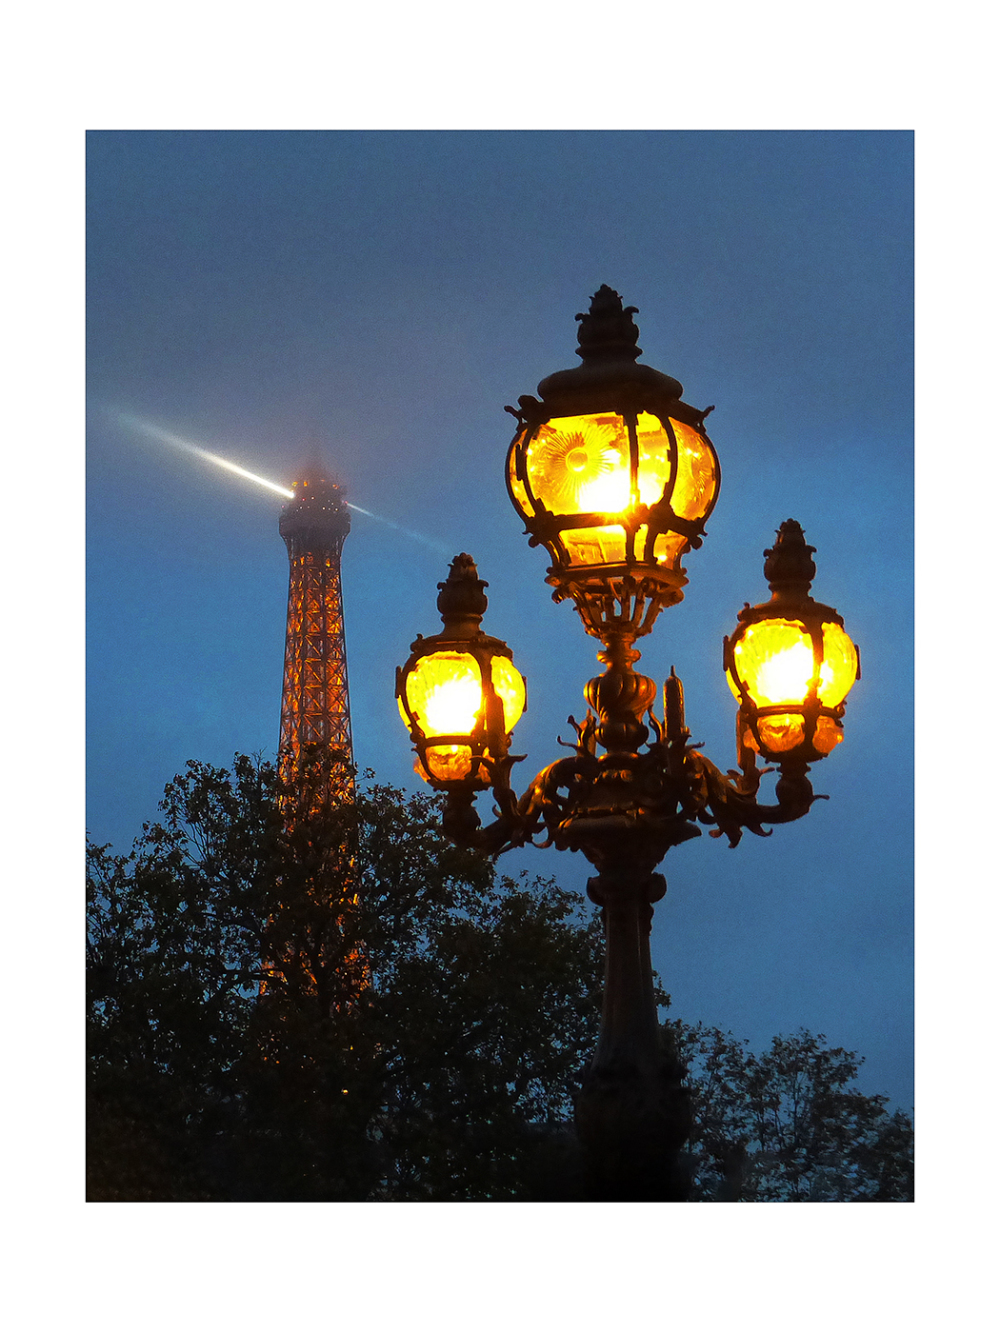 Paris streetlight with Eiffel Tower in cloud